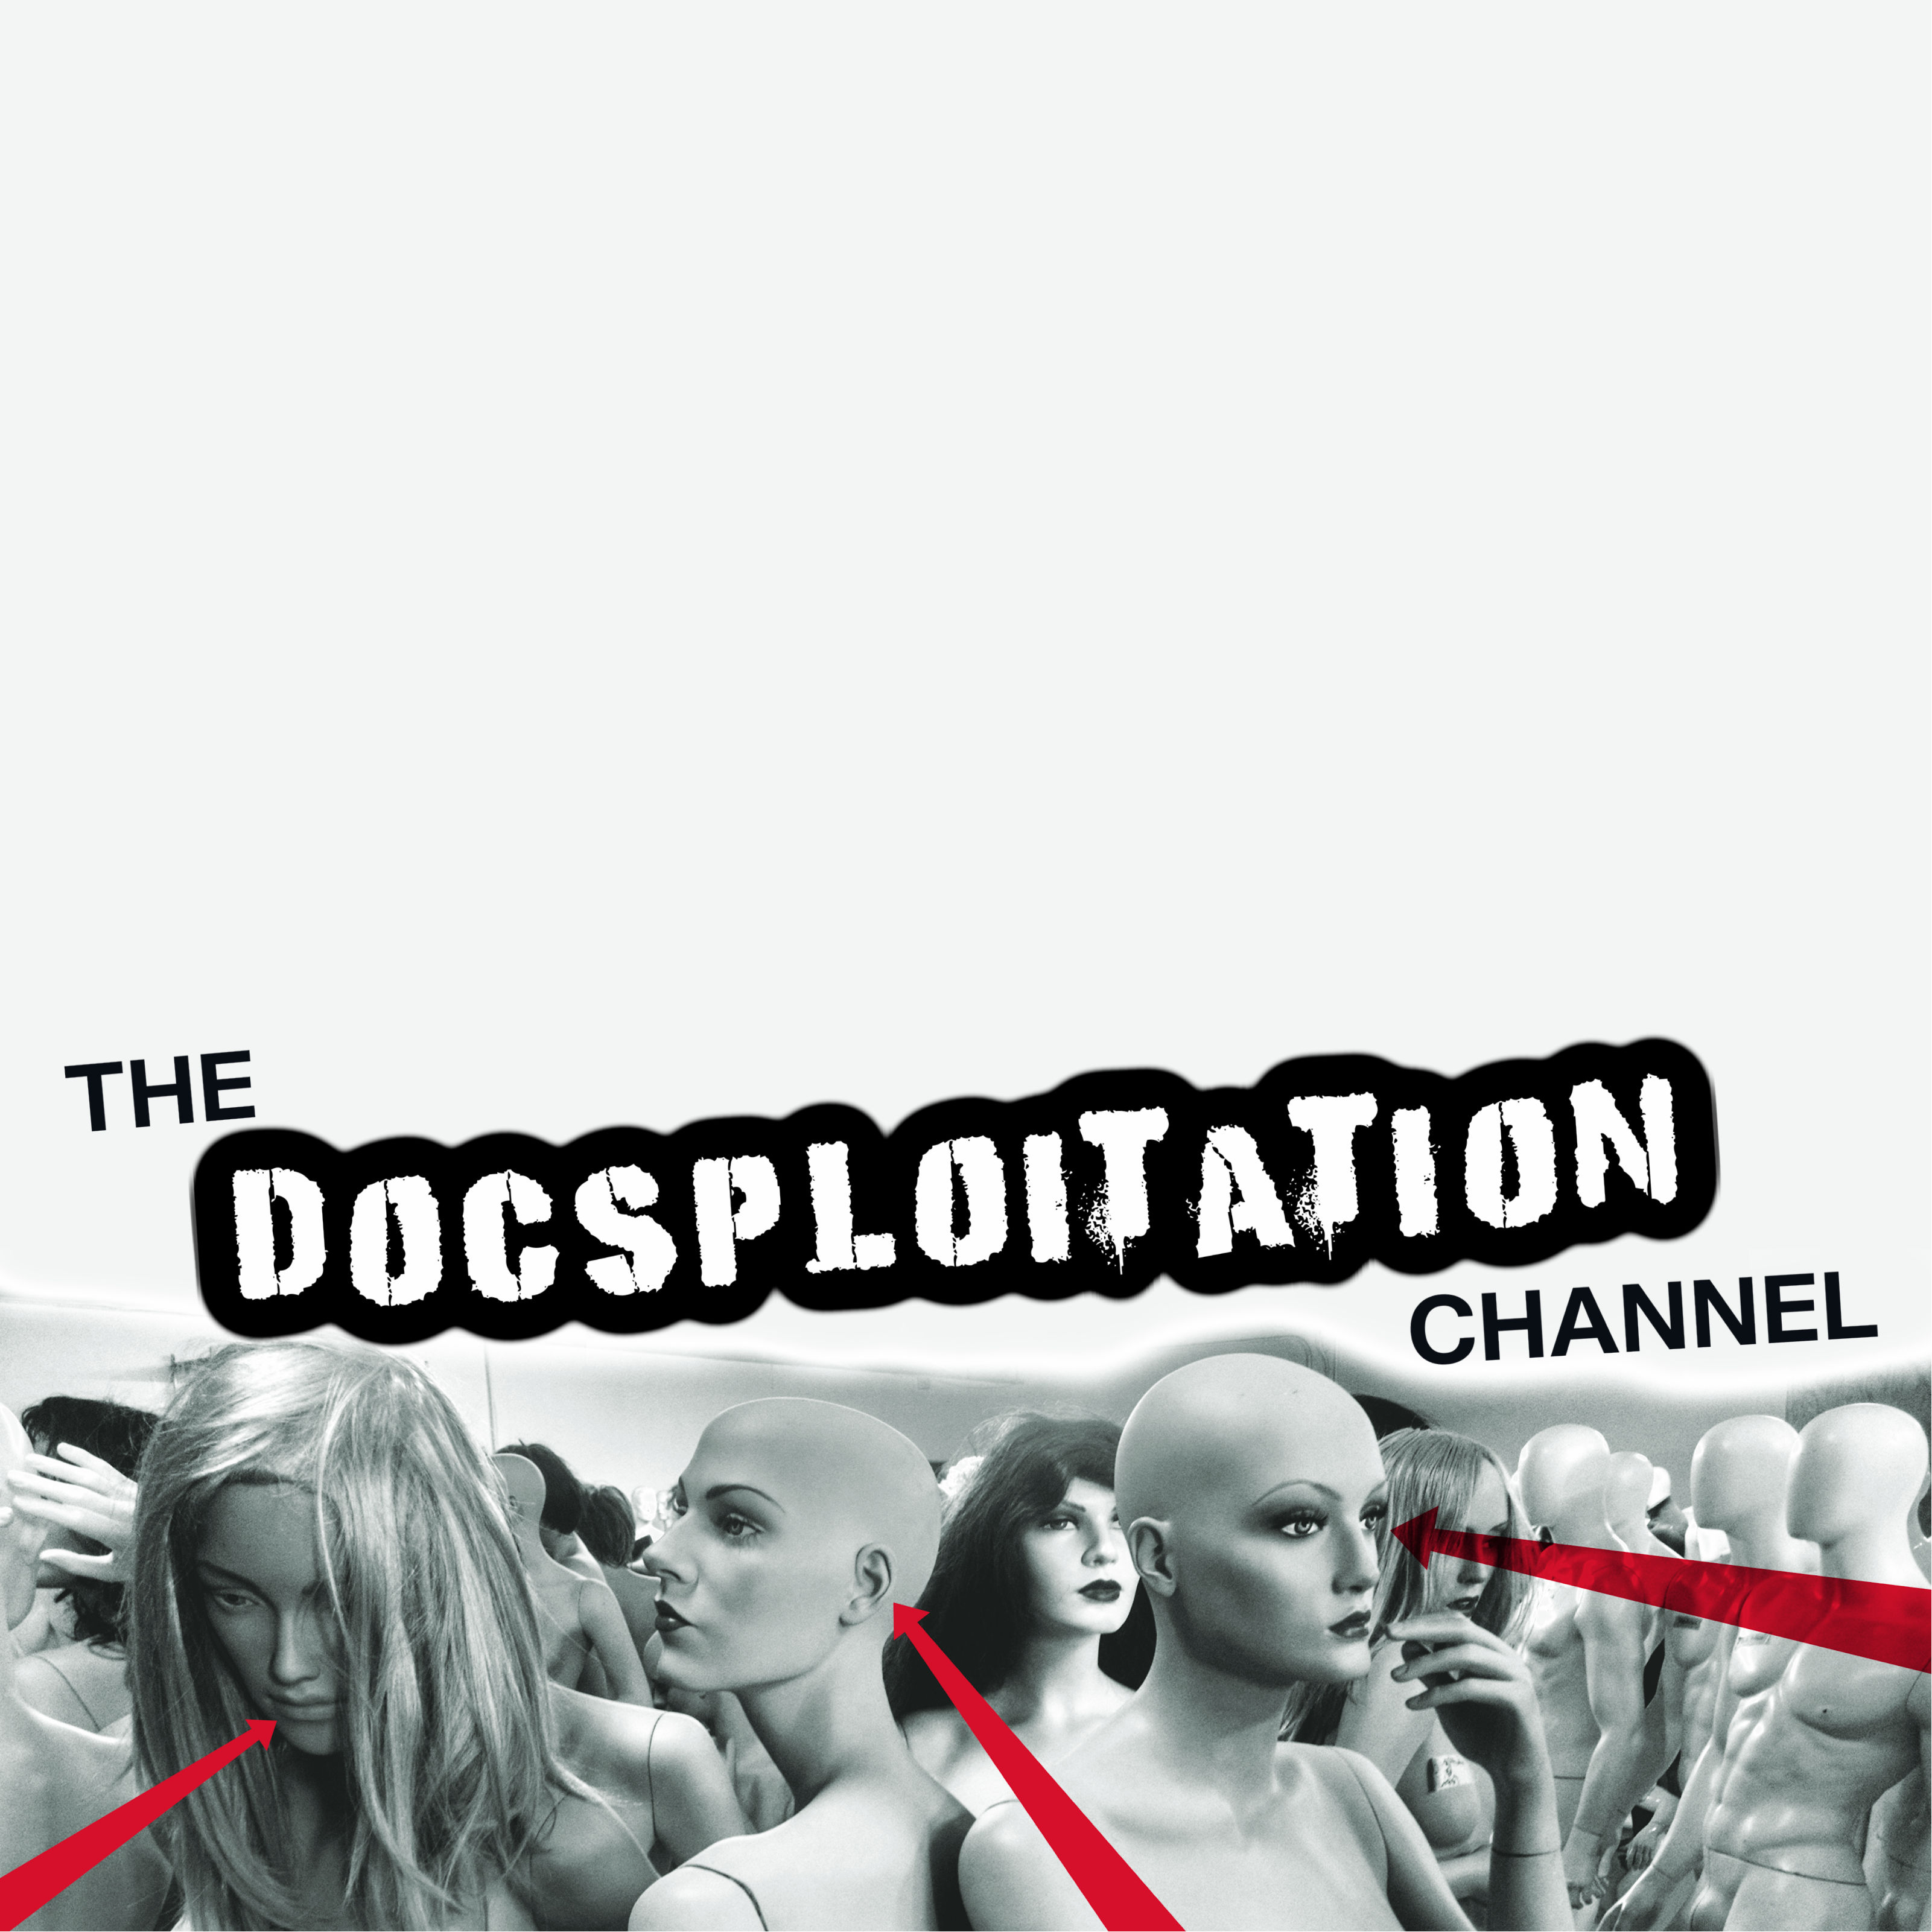 The Docsploitation Channel